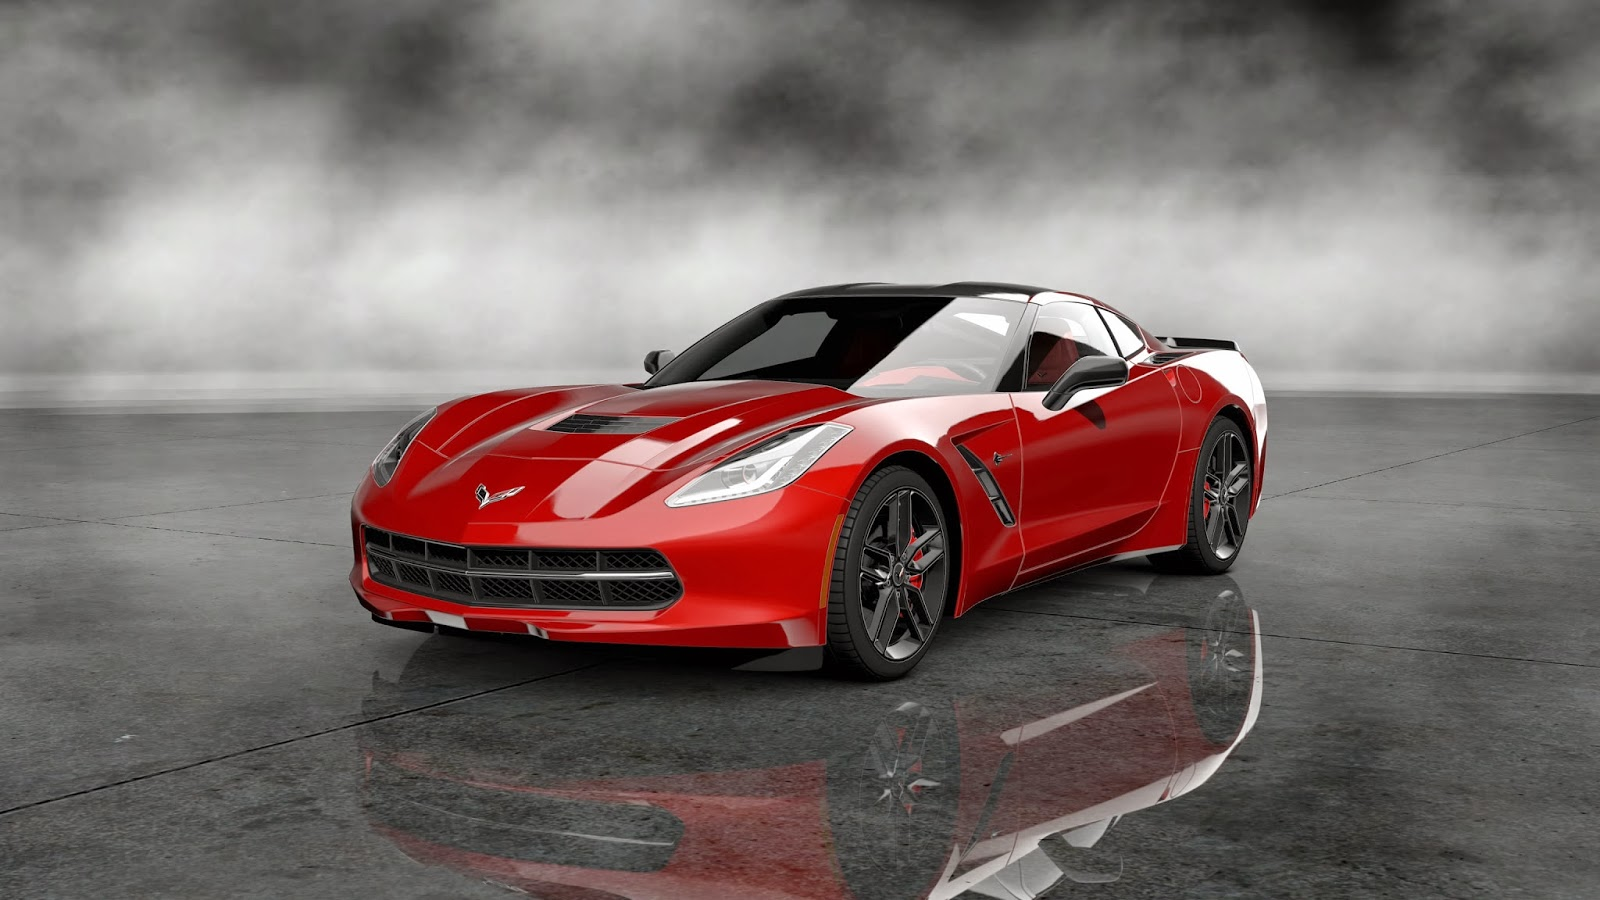 2014 Corvette Stingray Named Automobile of the Year